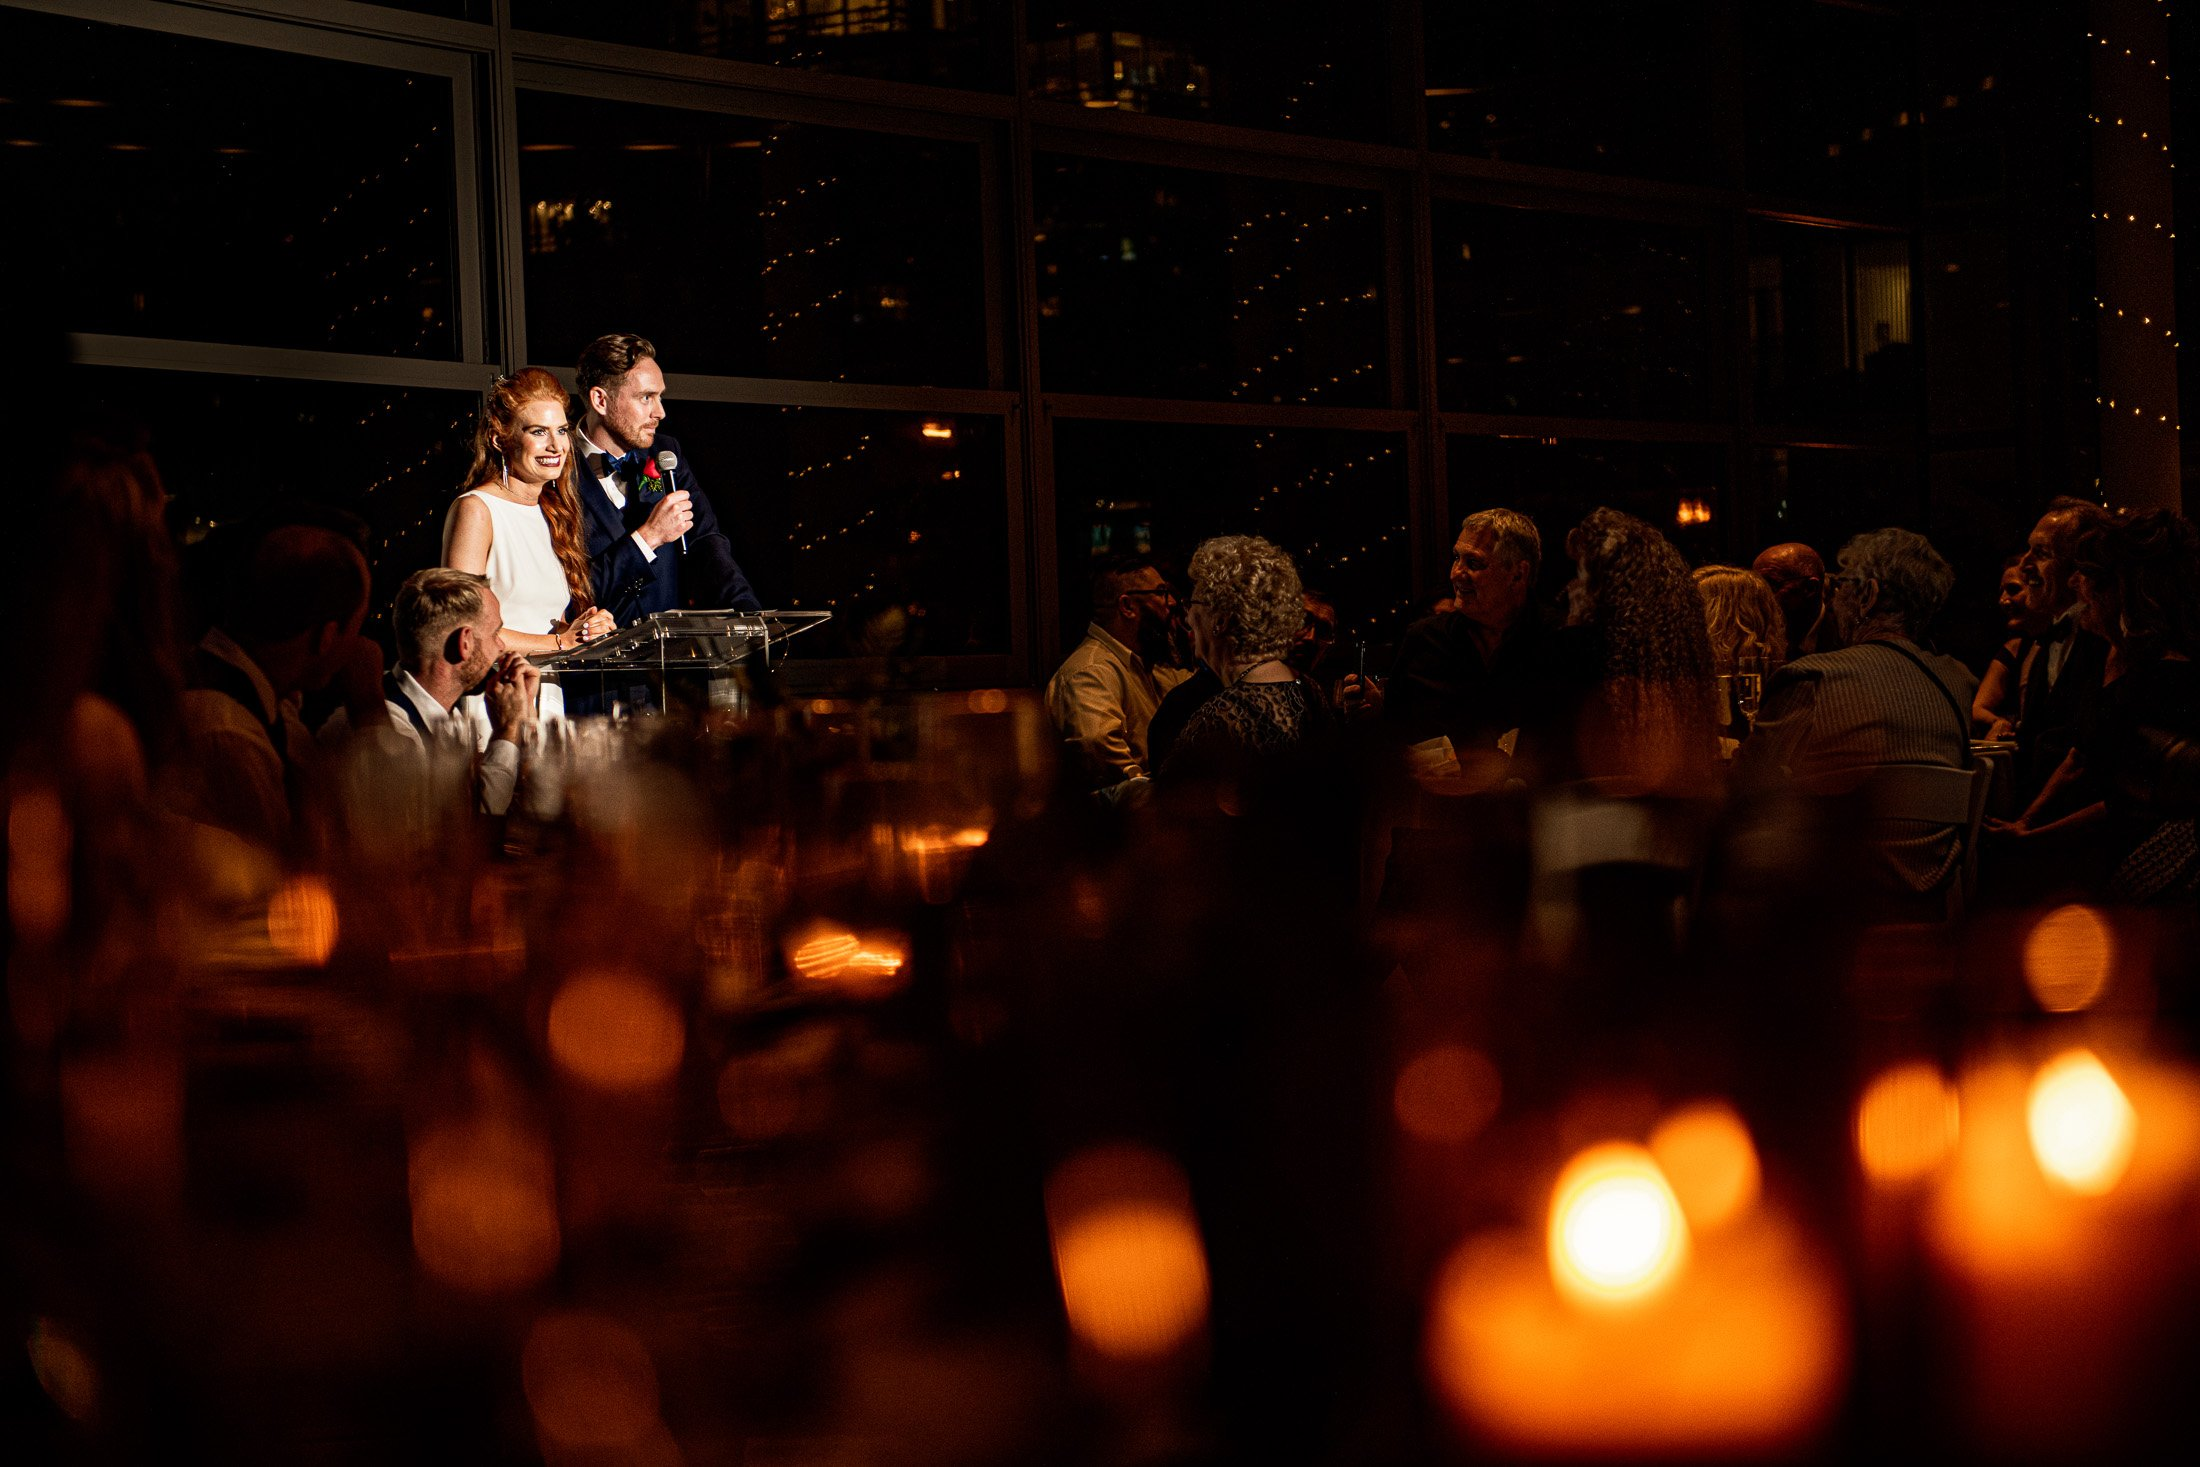 051 - candelit wedding waterview event space